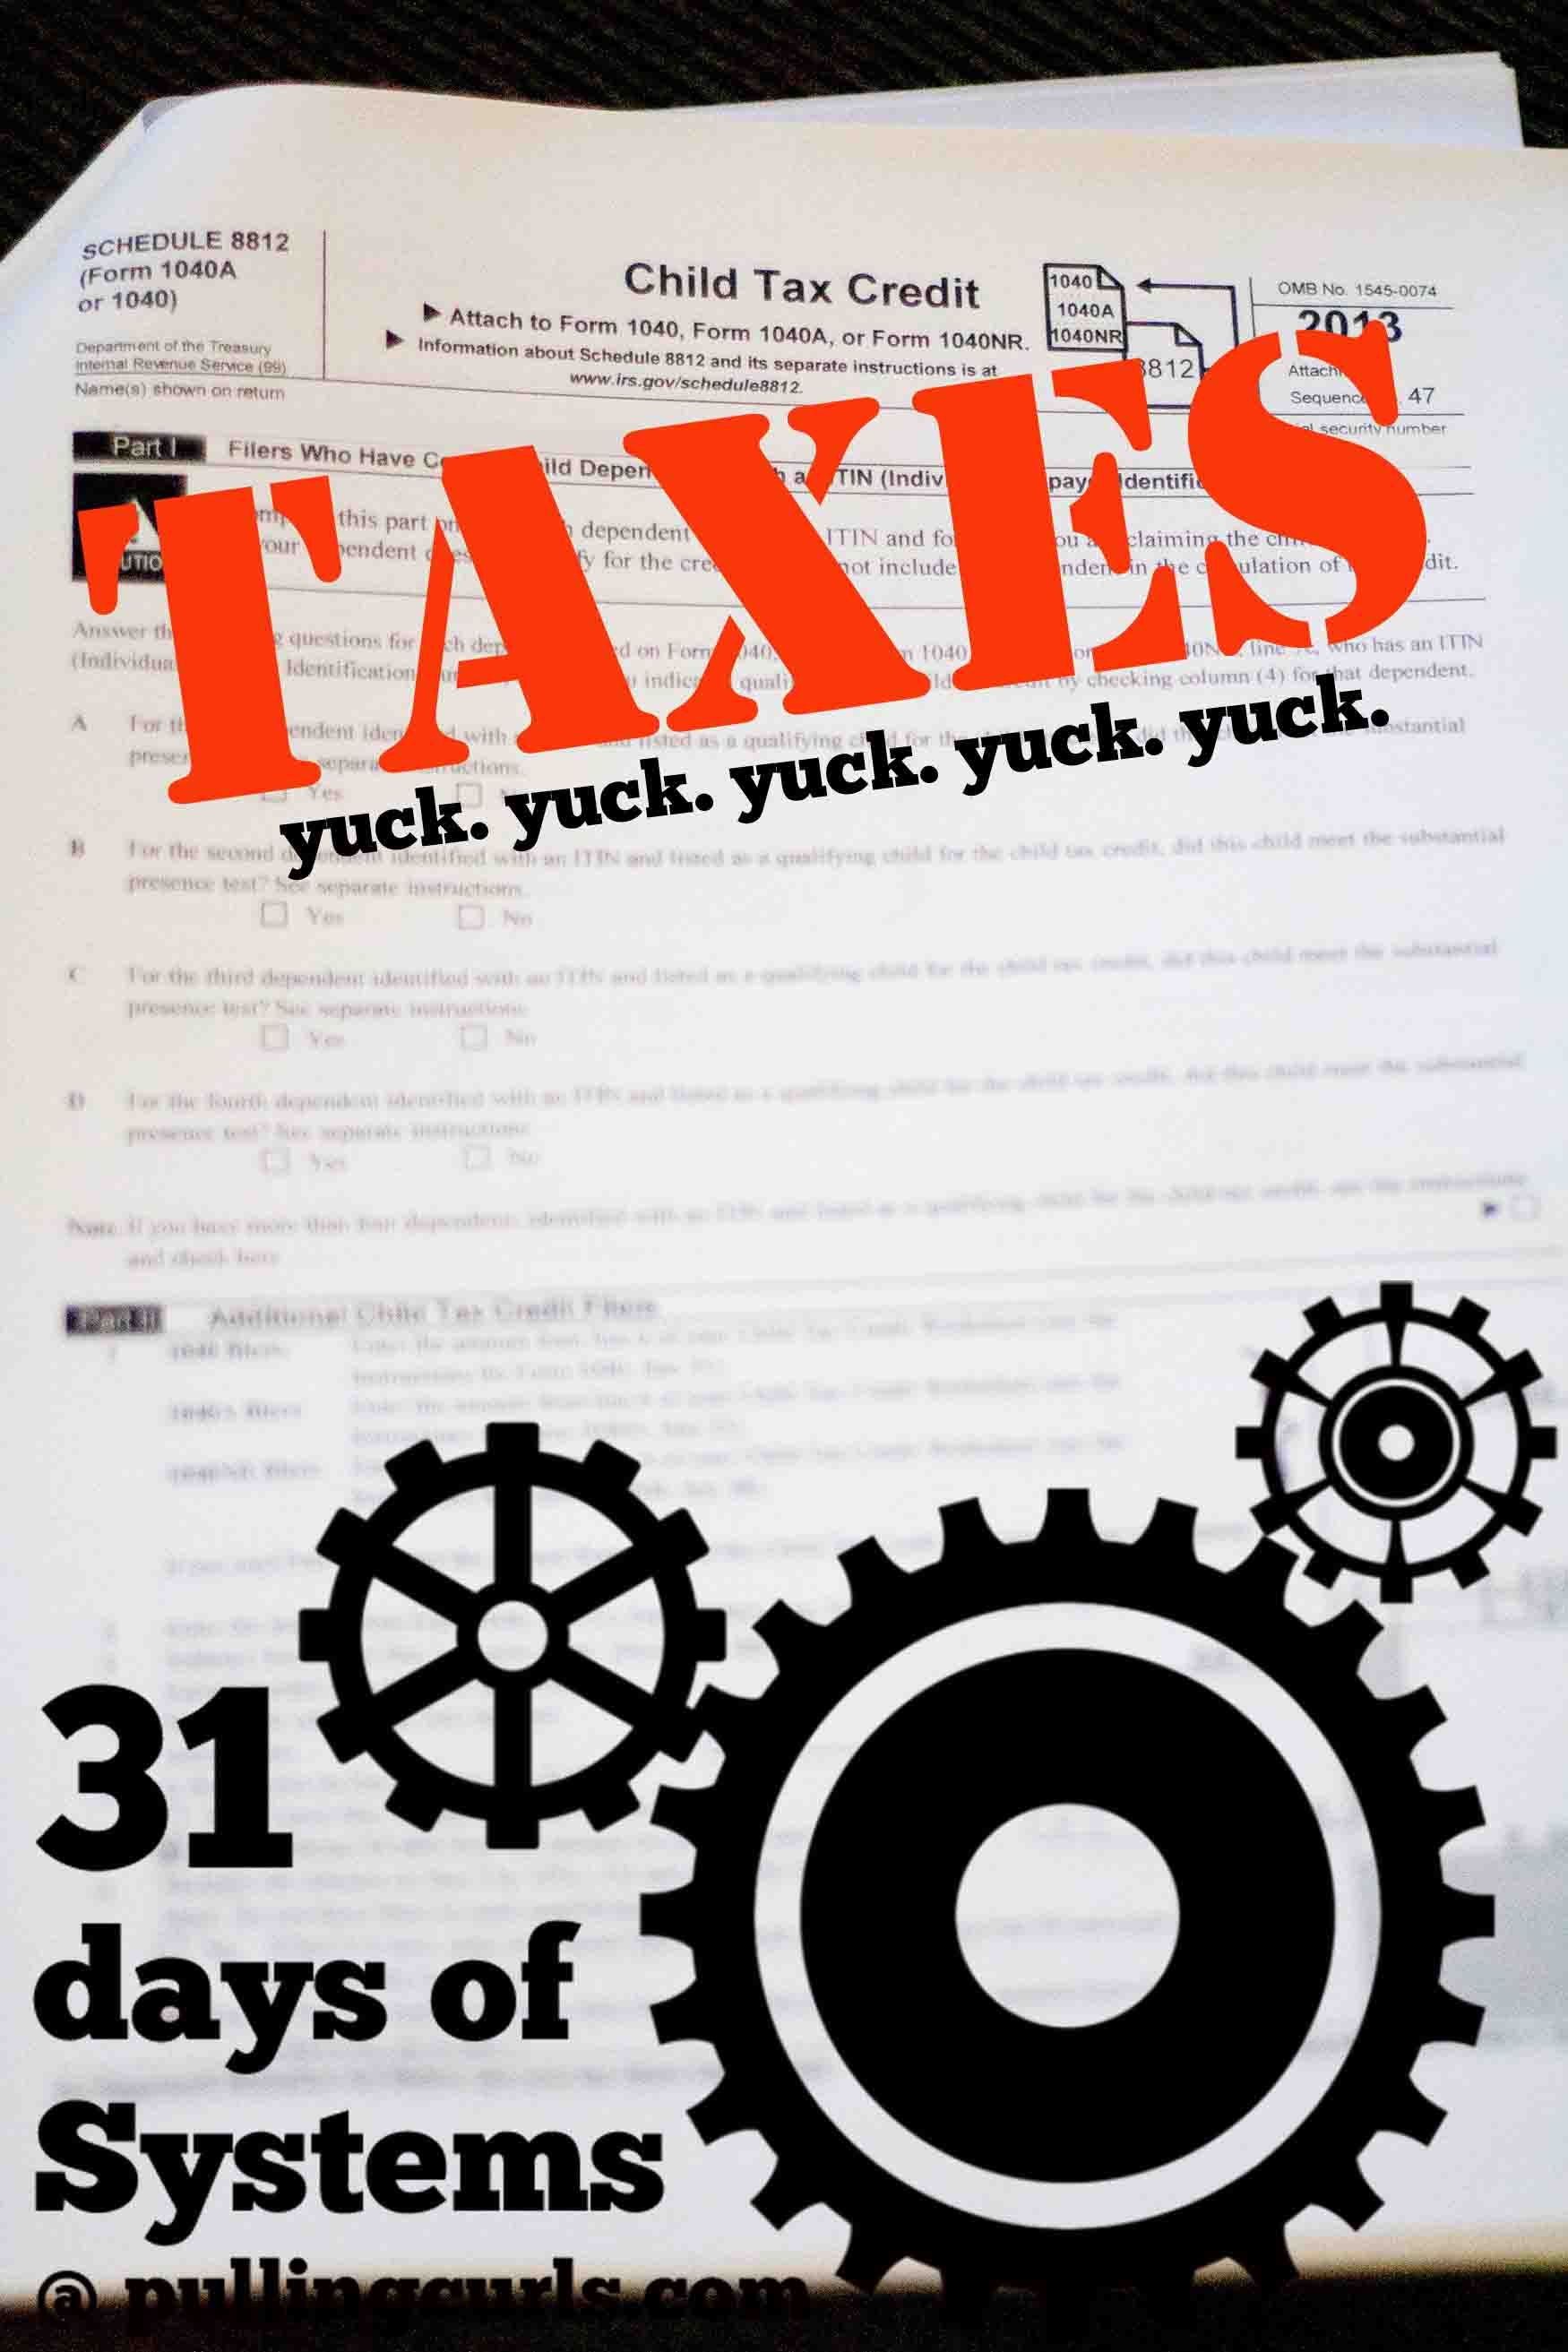 A System for Taxes | Pinterest | Organizations, Organizing and DIY ideas